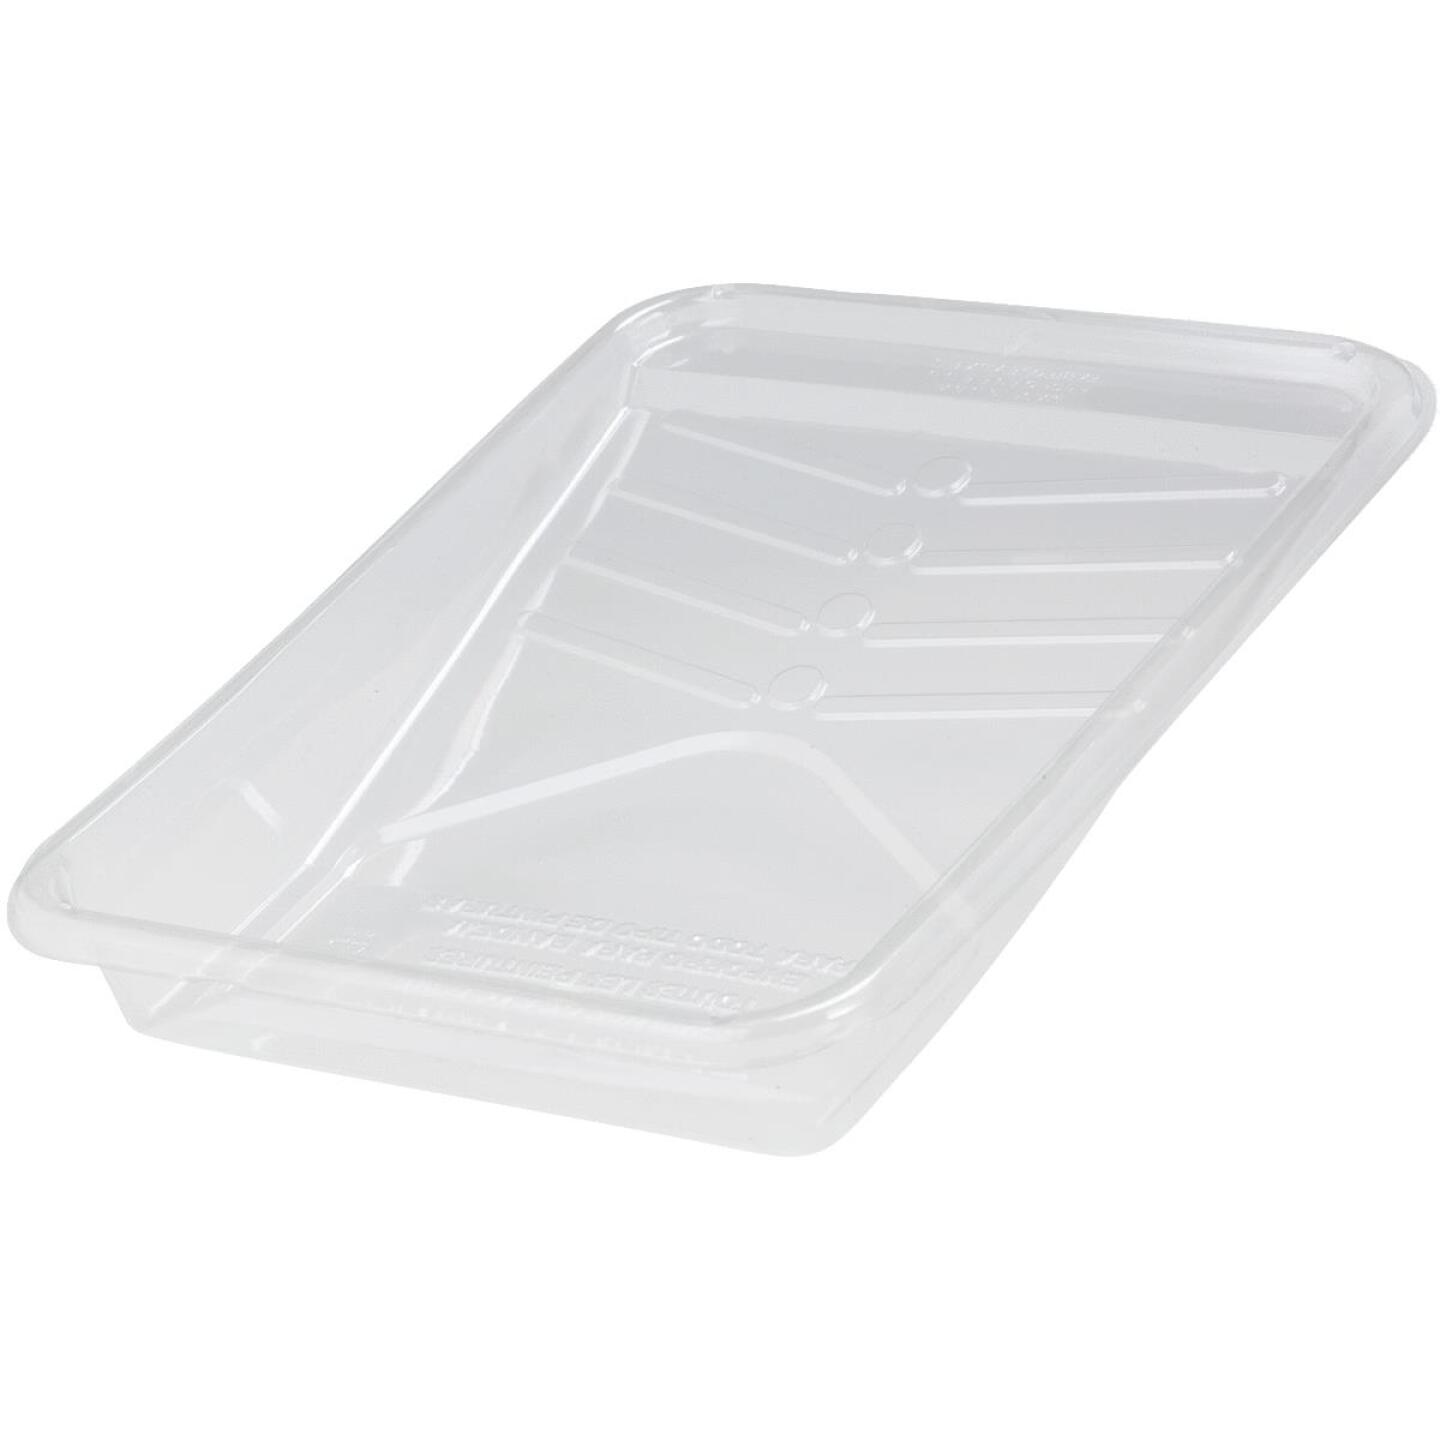 Shur-Line 9 In. Shallow Paint Tray Liner Image 1